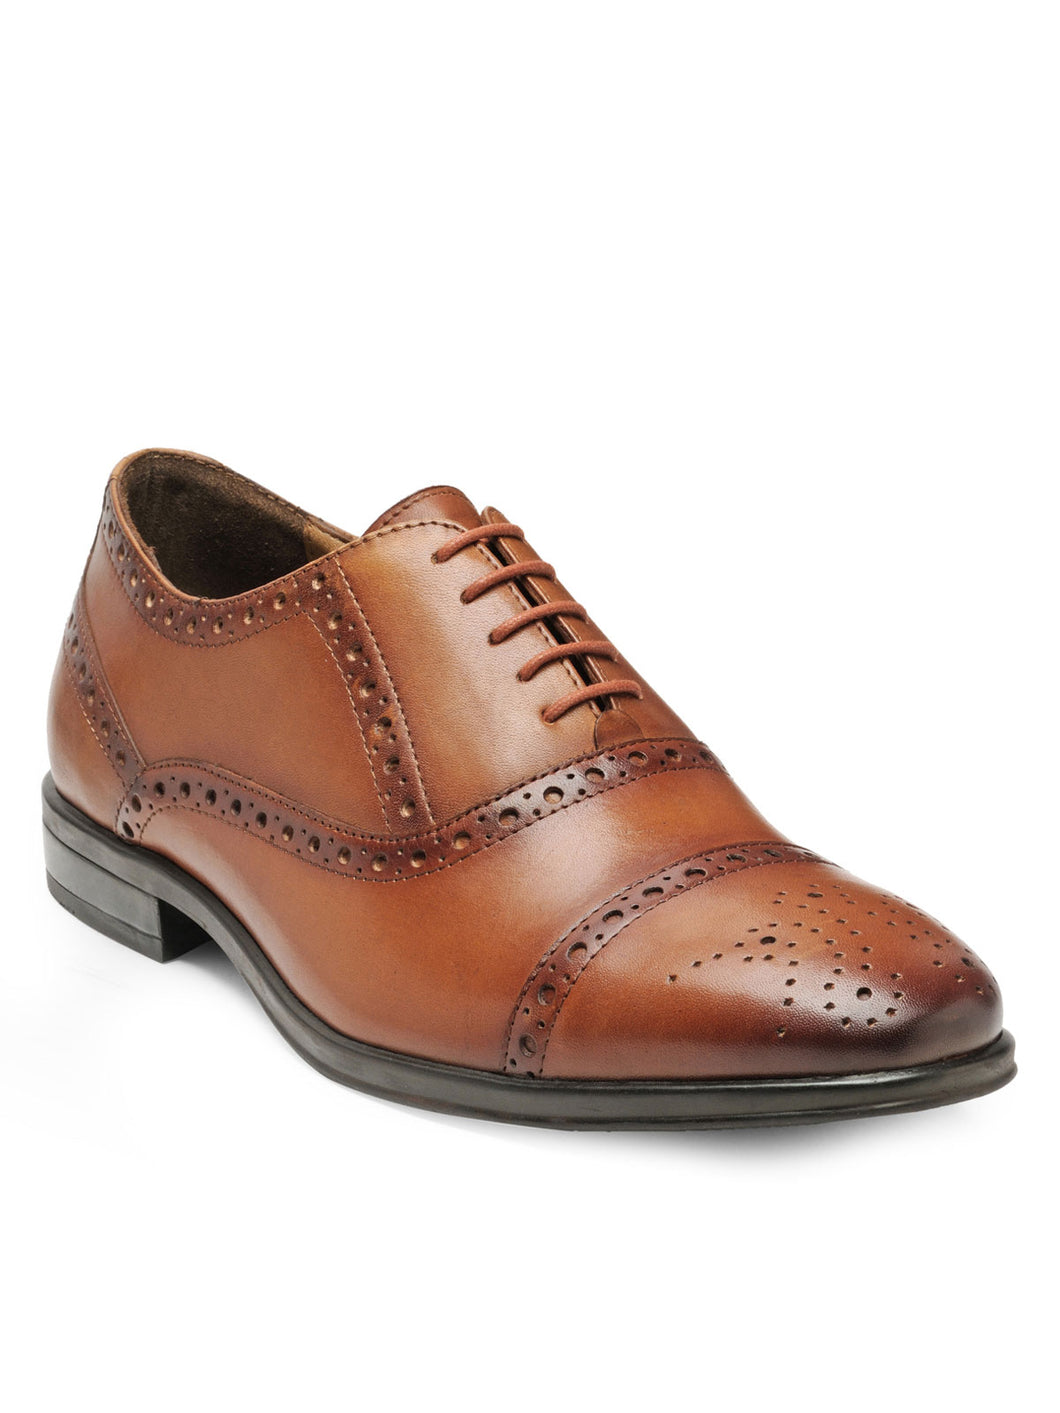 Teakwood Leather Men's Tan Oxford/Brogue Shoes